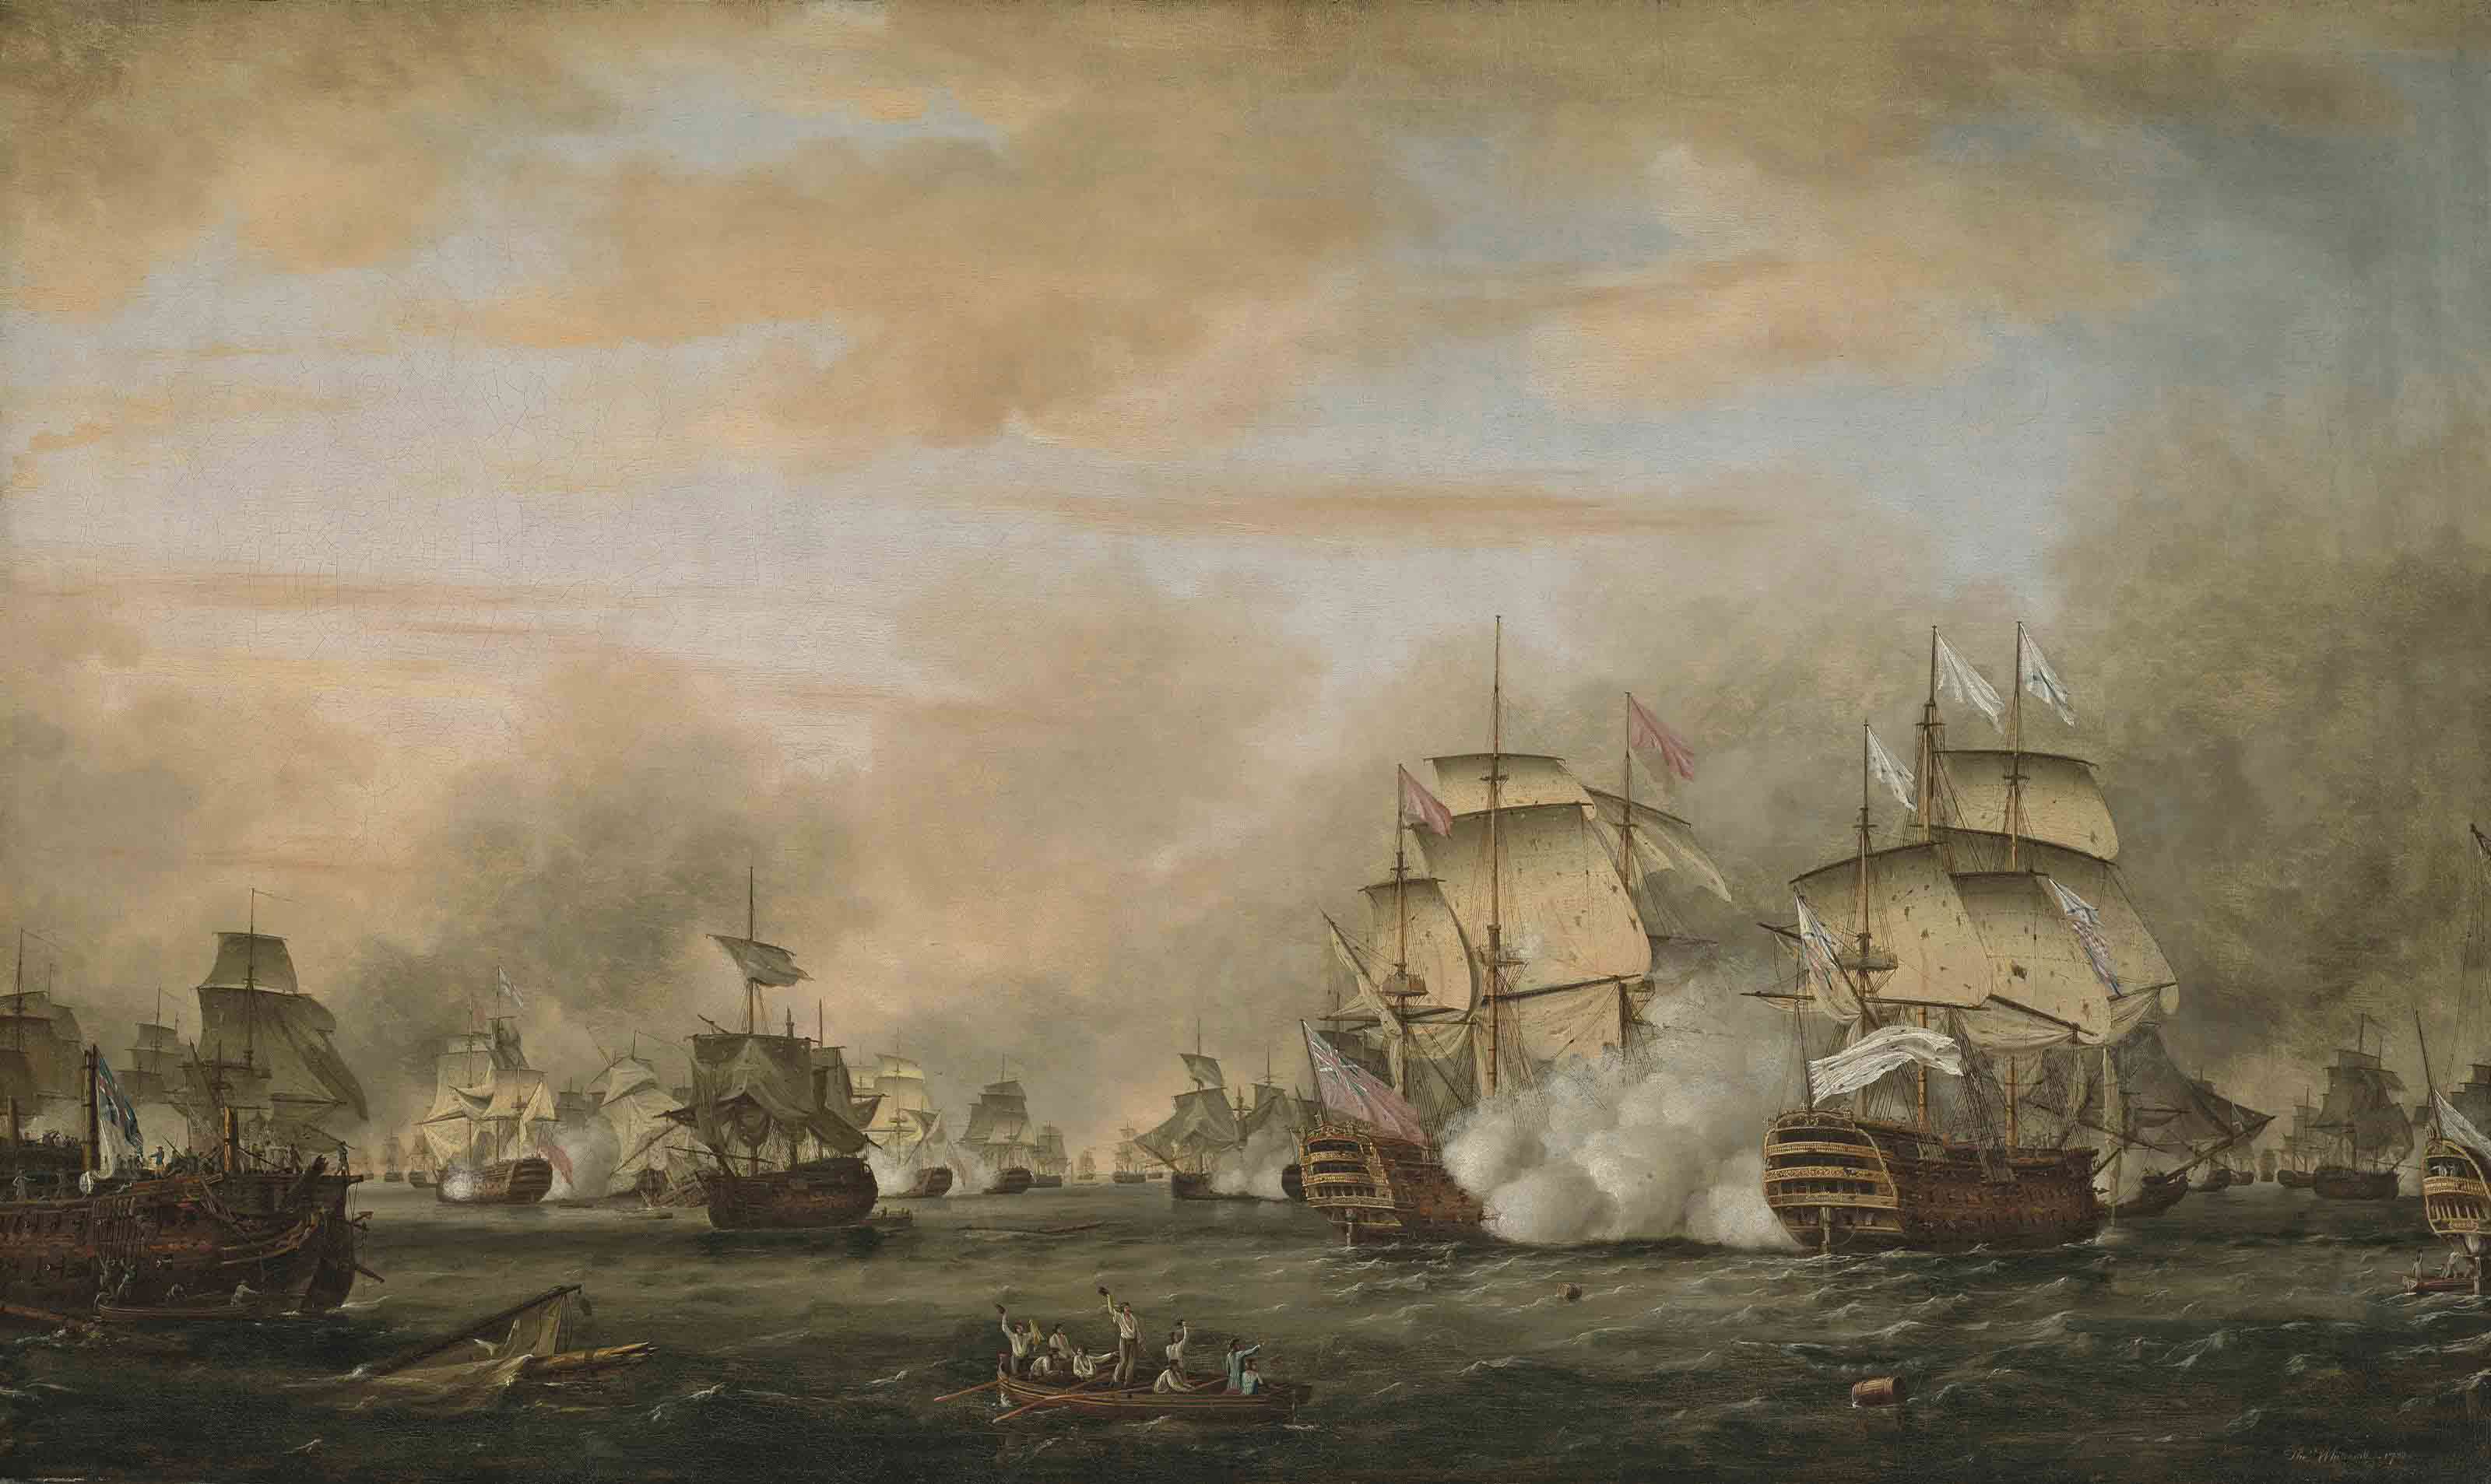 In 1771 Succeeding Lord Hawke today, 242 years ago, as First Lord of Admiralty, Welbore Ellis, Lord Dover, not only kept on the good work of his predecessor in reforming the Royal Navy but surpassed him - mostly by being one of the few upright persons in the otherwise chaotic and corrupt government of Lord North.<span class=EditorText>This post was written by Dirk Puehl the highly recommended author of <a href=https://plus.google.com/u/0/101959956375064214309/posts>#onthisday #history</a> Google+ posts.</span>